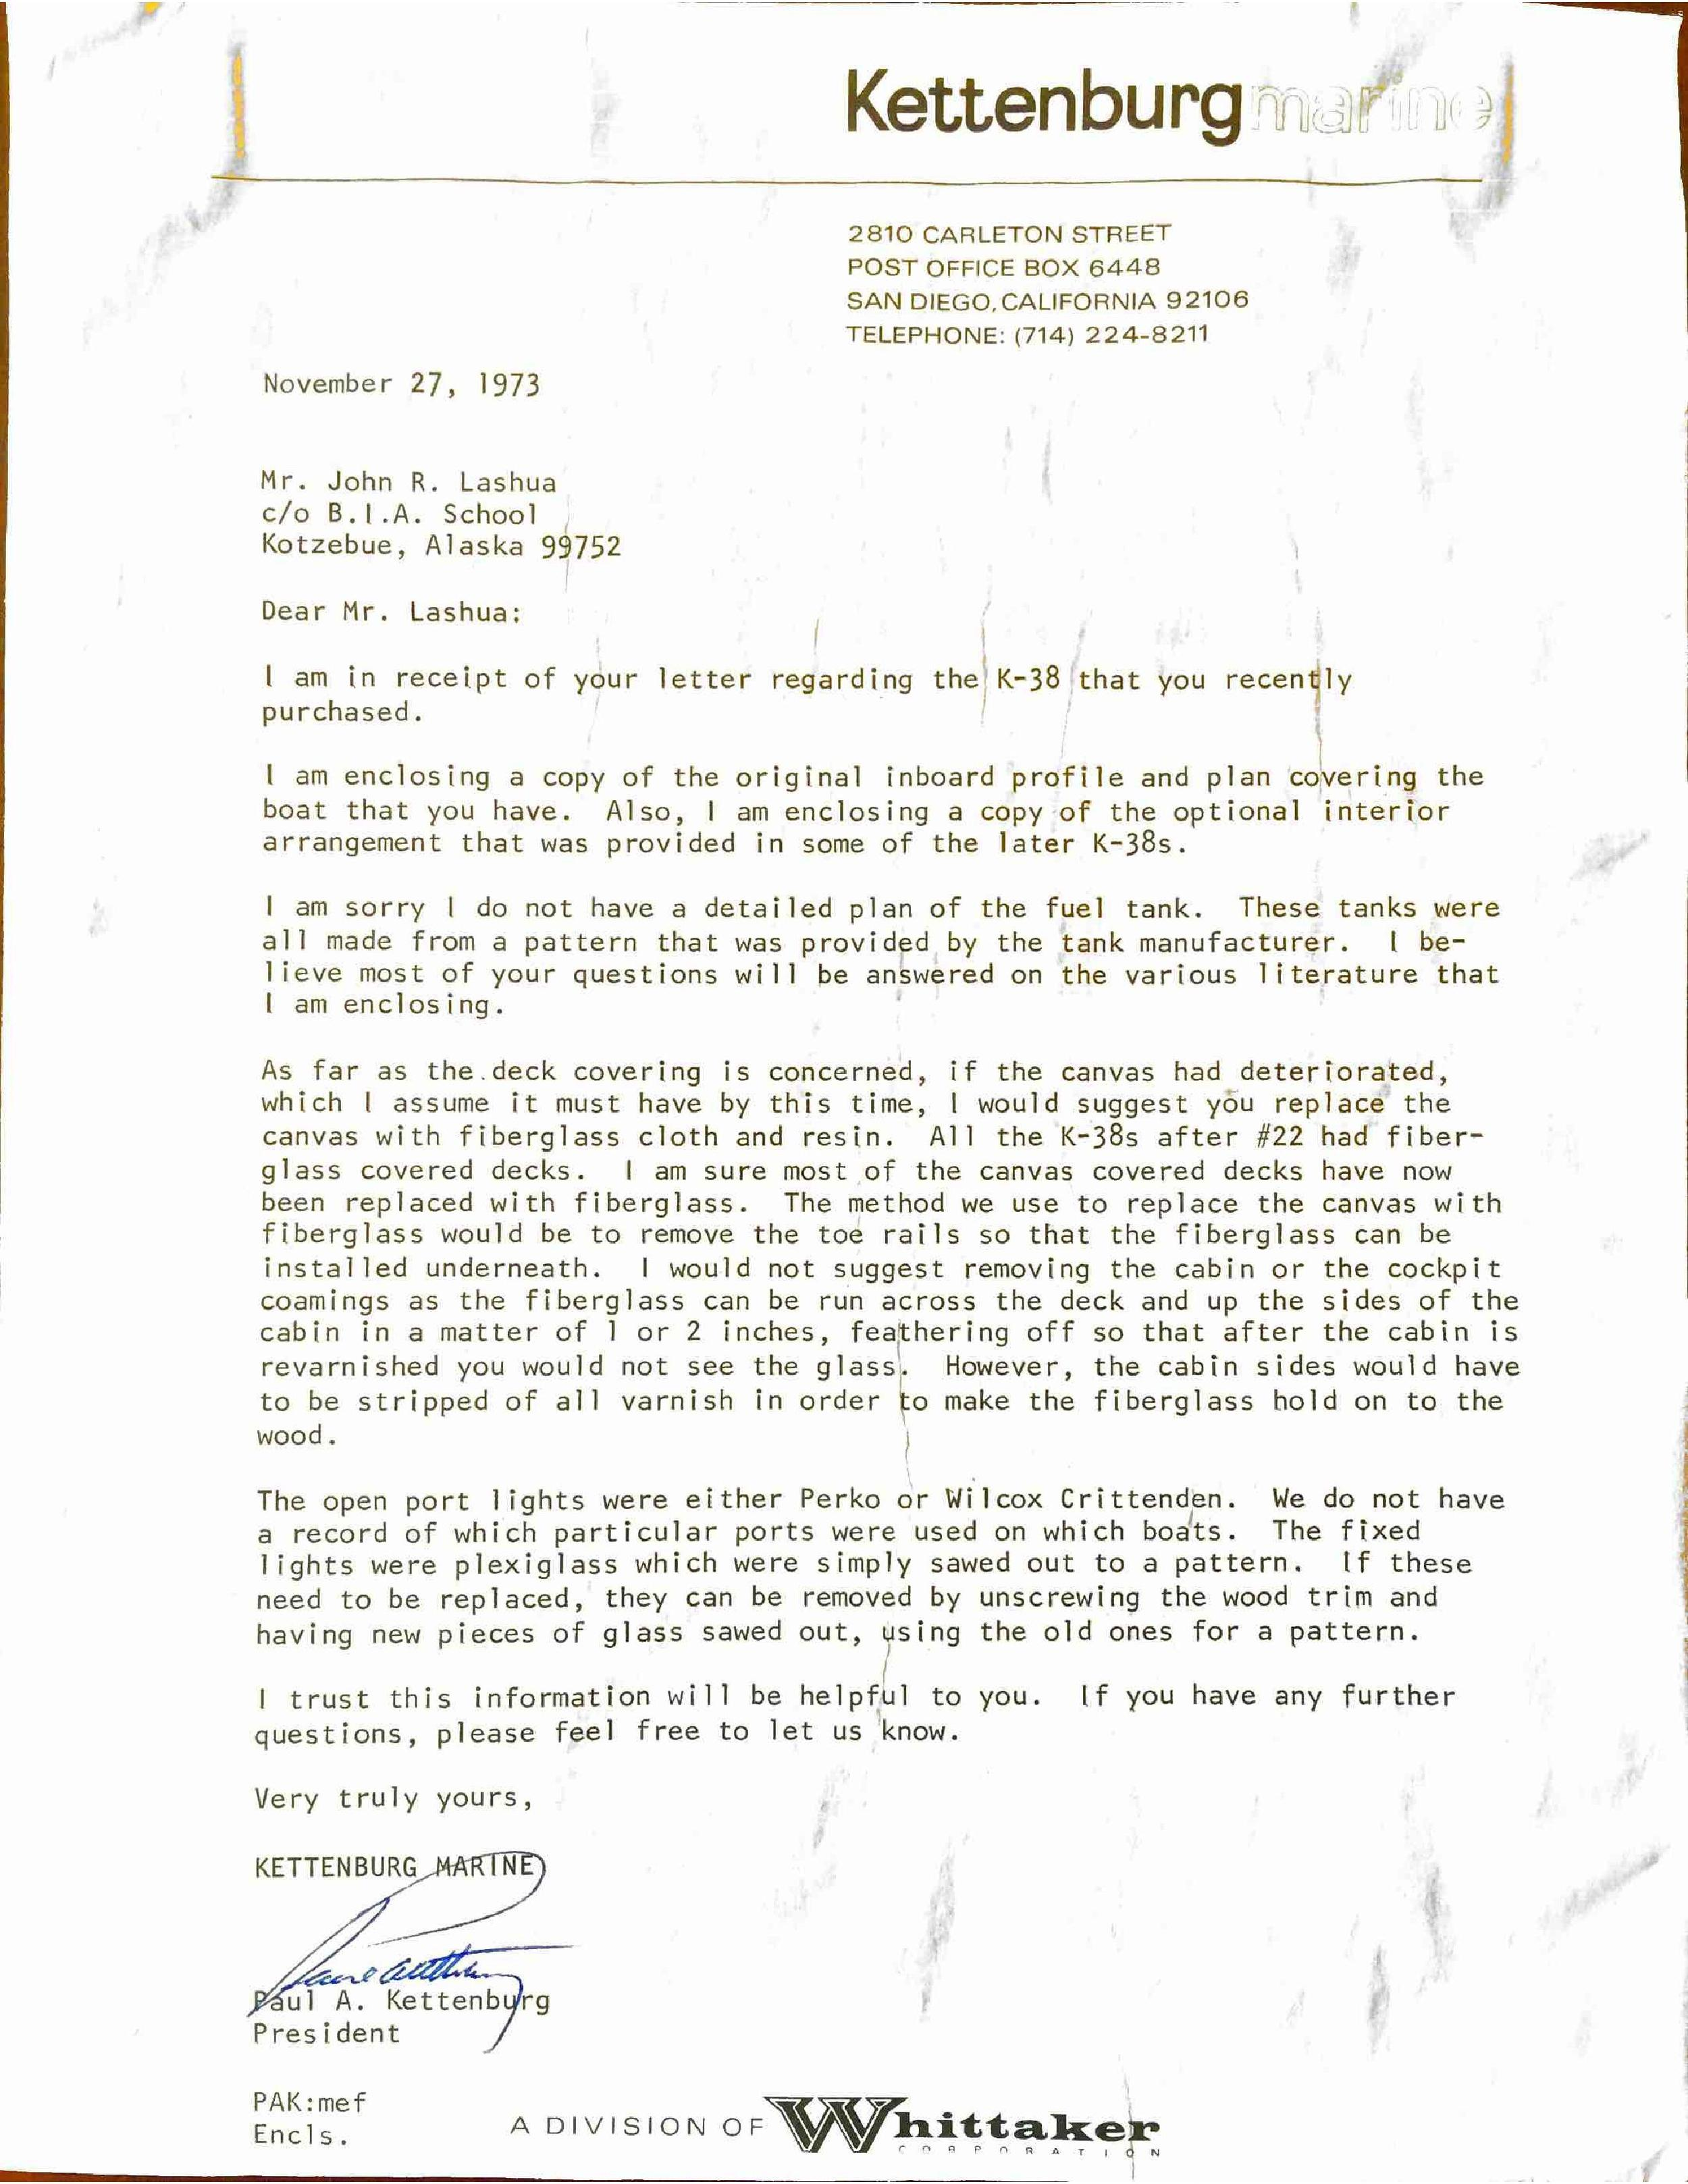 "Letter from the actual designer/builder who built the K-38 in 1951. This letter is dated 27NOV1973, almost 21 years after launch ""somewhere"" in 1951."